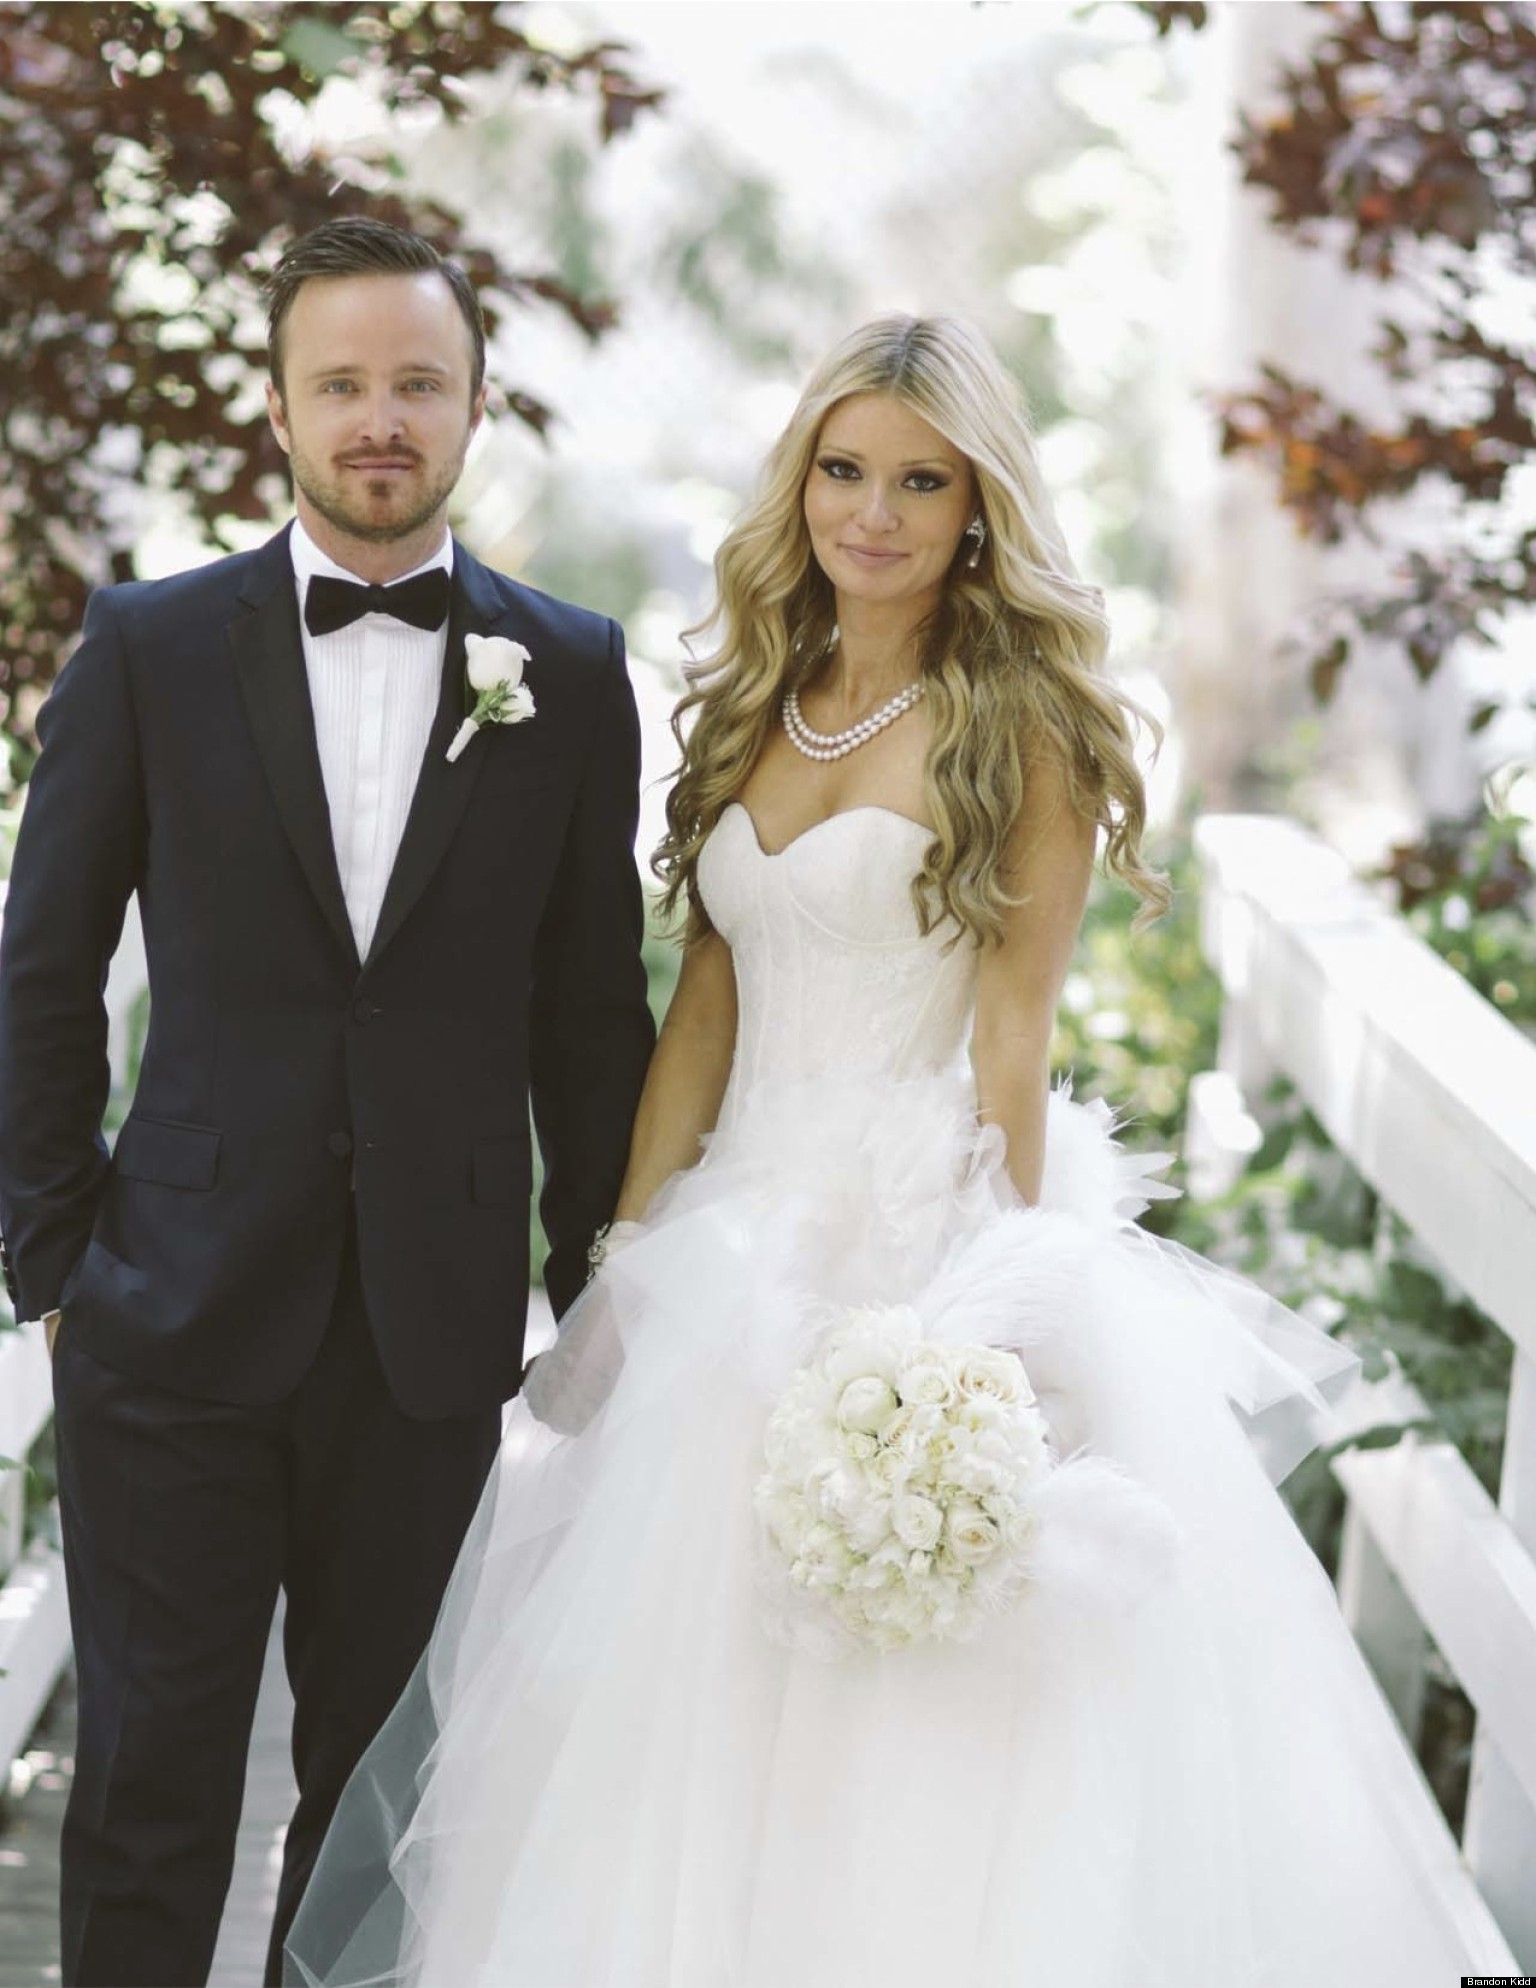 Celebrity weddings: See the stars' most beautiful big day pics